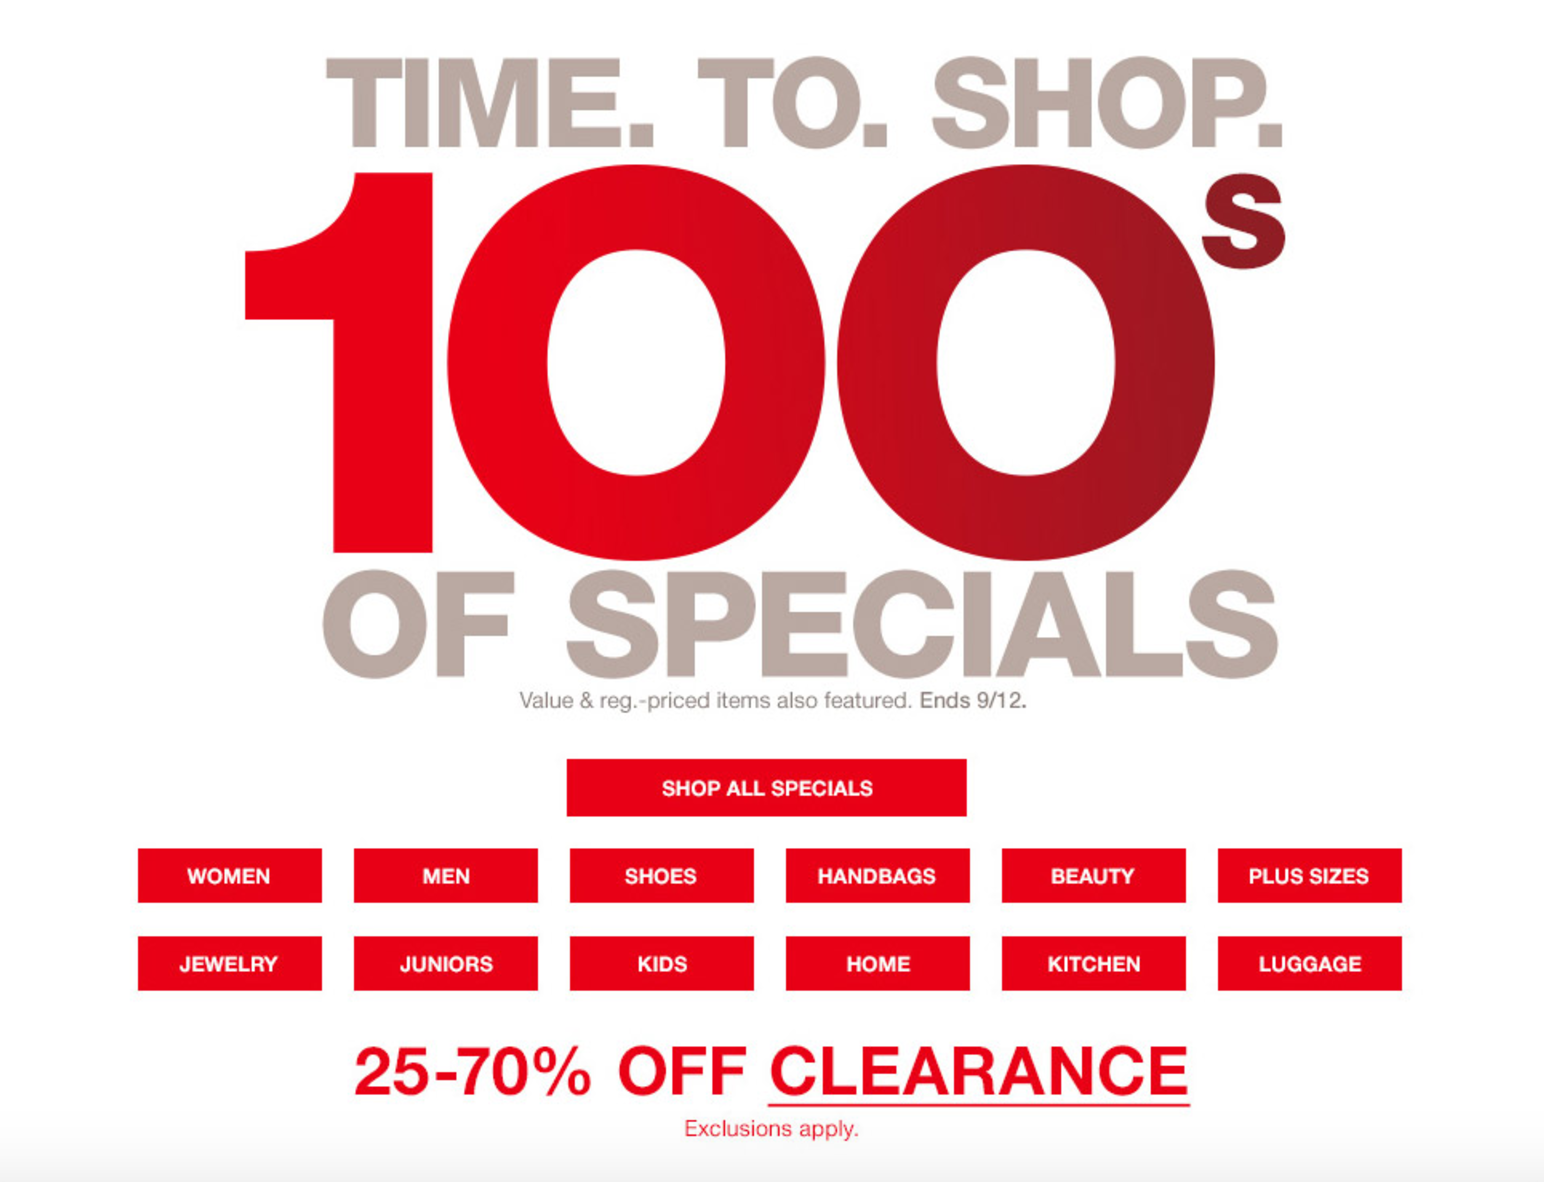 Time to Shop 100s of Specials Sale